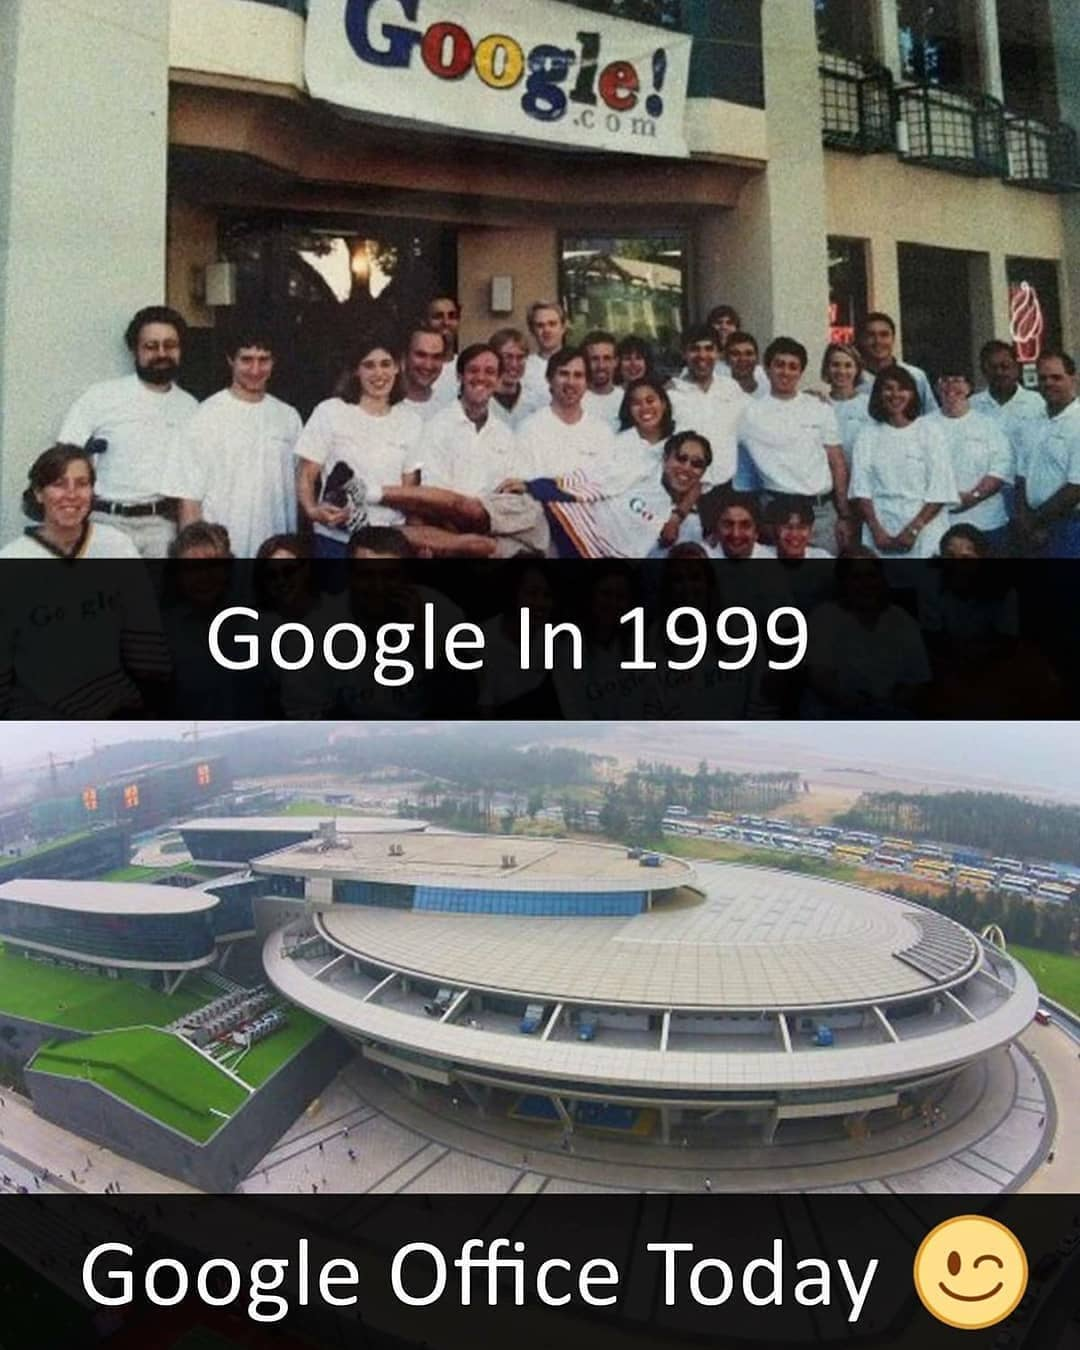 "Dream On Science on Instagram: ""In 1999, Google, which had fewer than 10 employees, left Susan Wojcicki's garage for its first office, located nearby at 165 University…"""